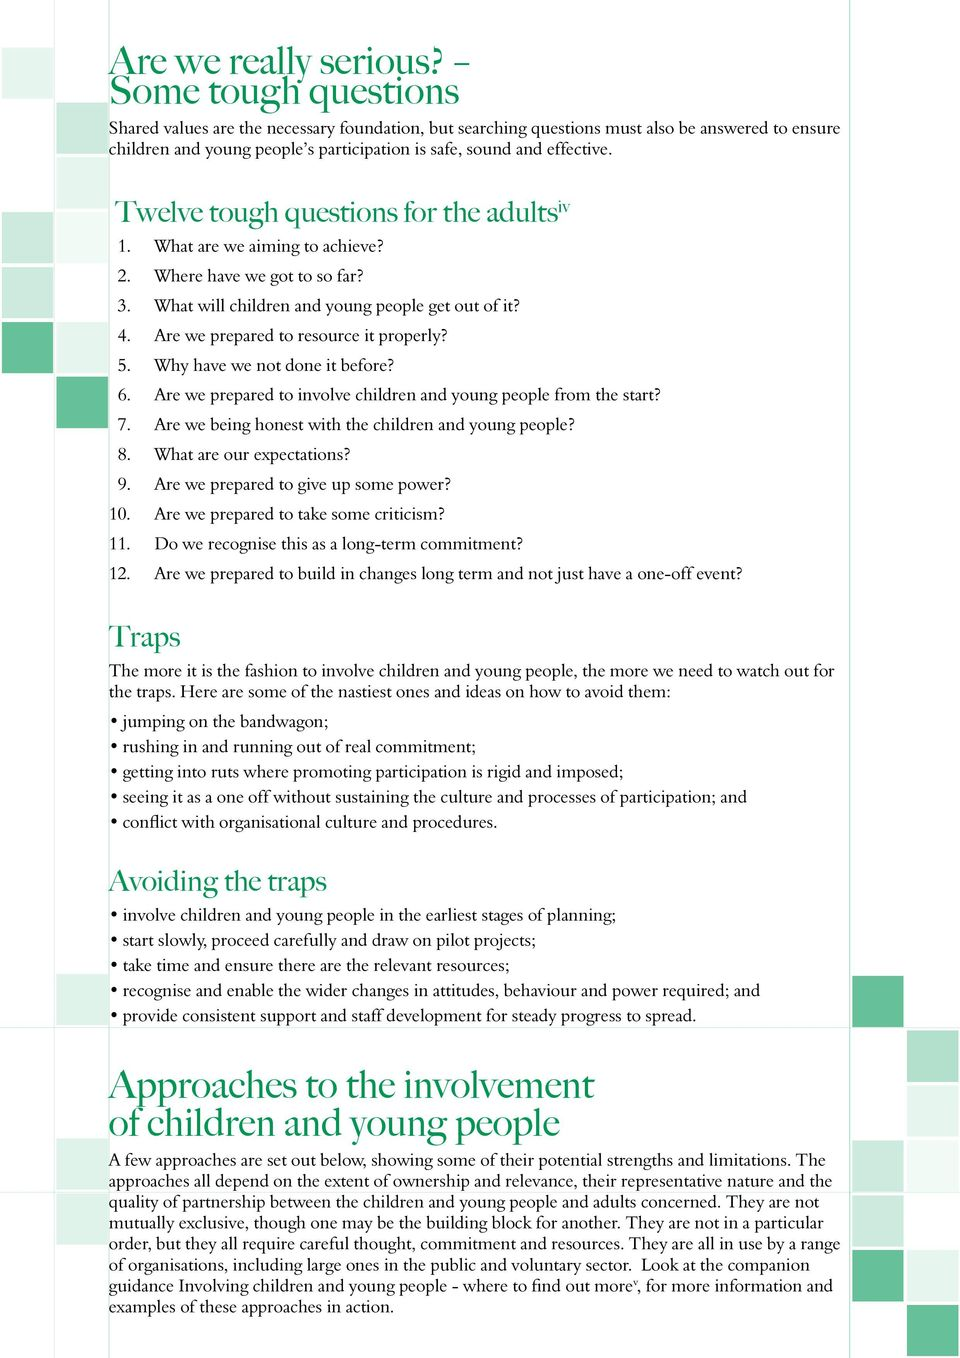 Twelve tough questions for the adults iv 1. What are we aiming to achieve? 2. Where have we got to so far? 3. What will children and young people get out of it? 4.